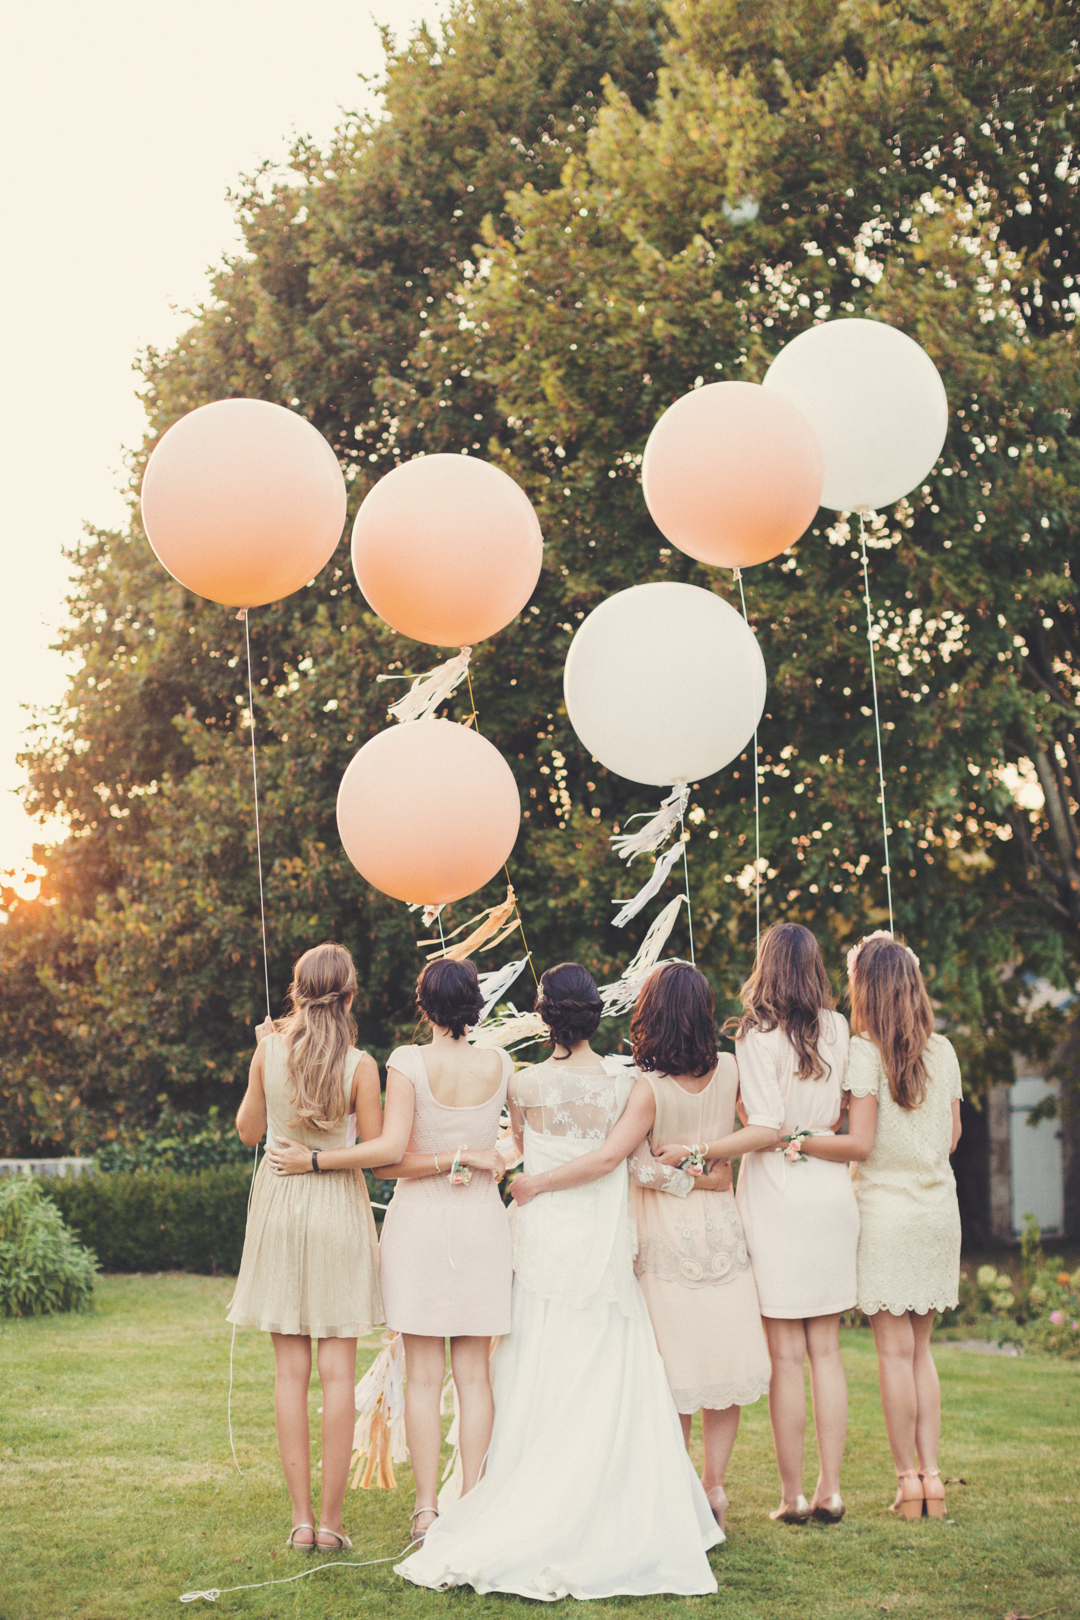 Northern California Wedding Photographer @ Anne-Claire Brun 0052